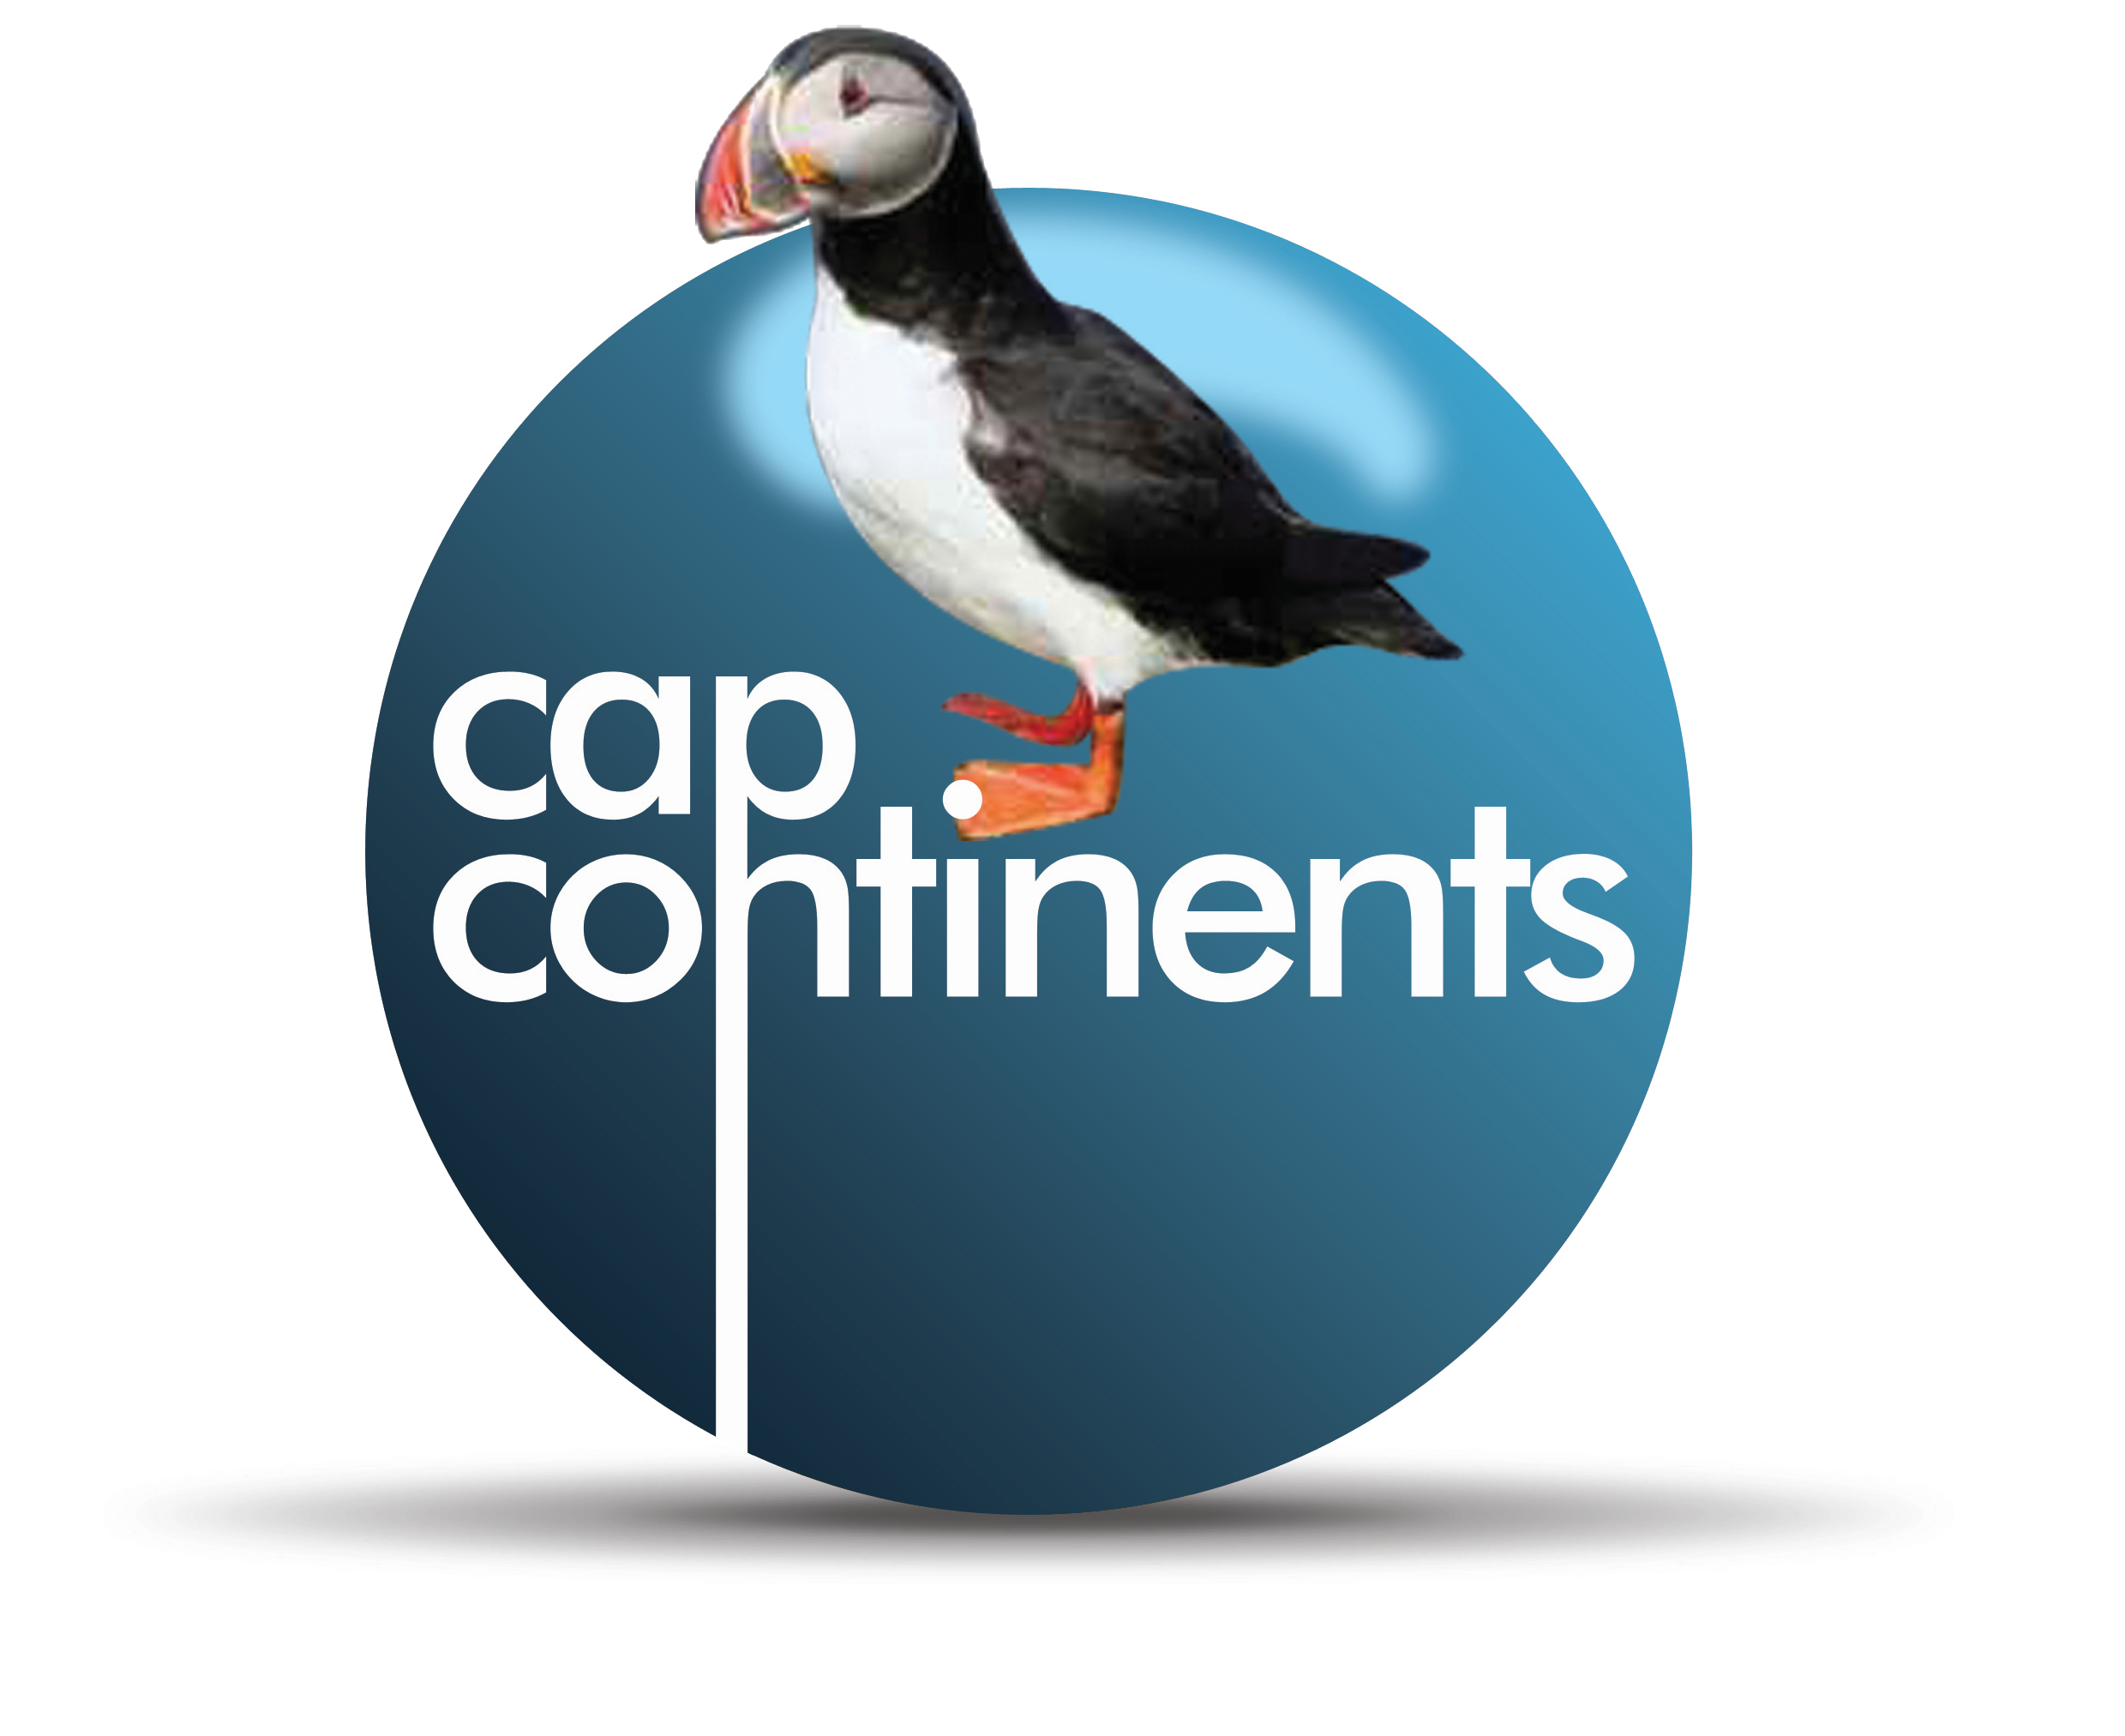 Capcontinents